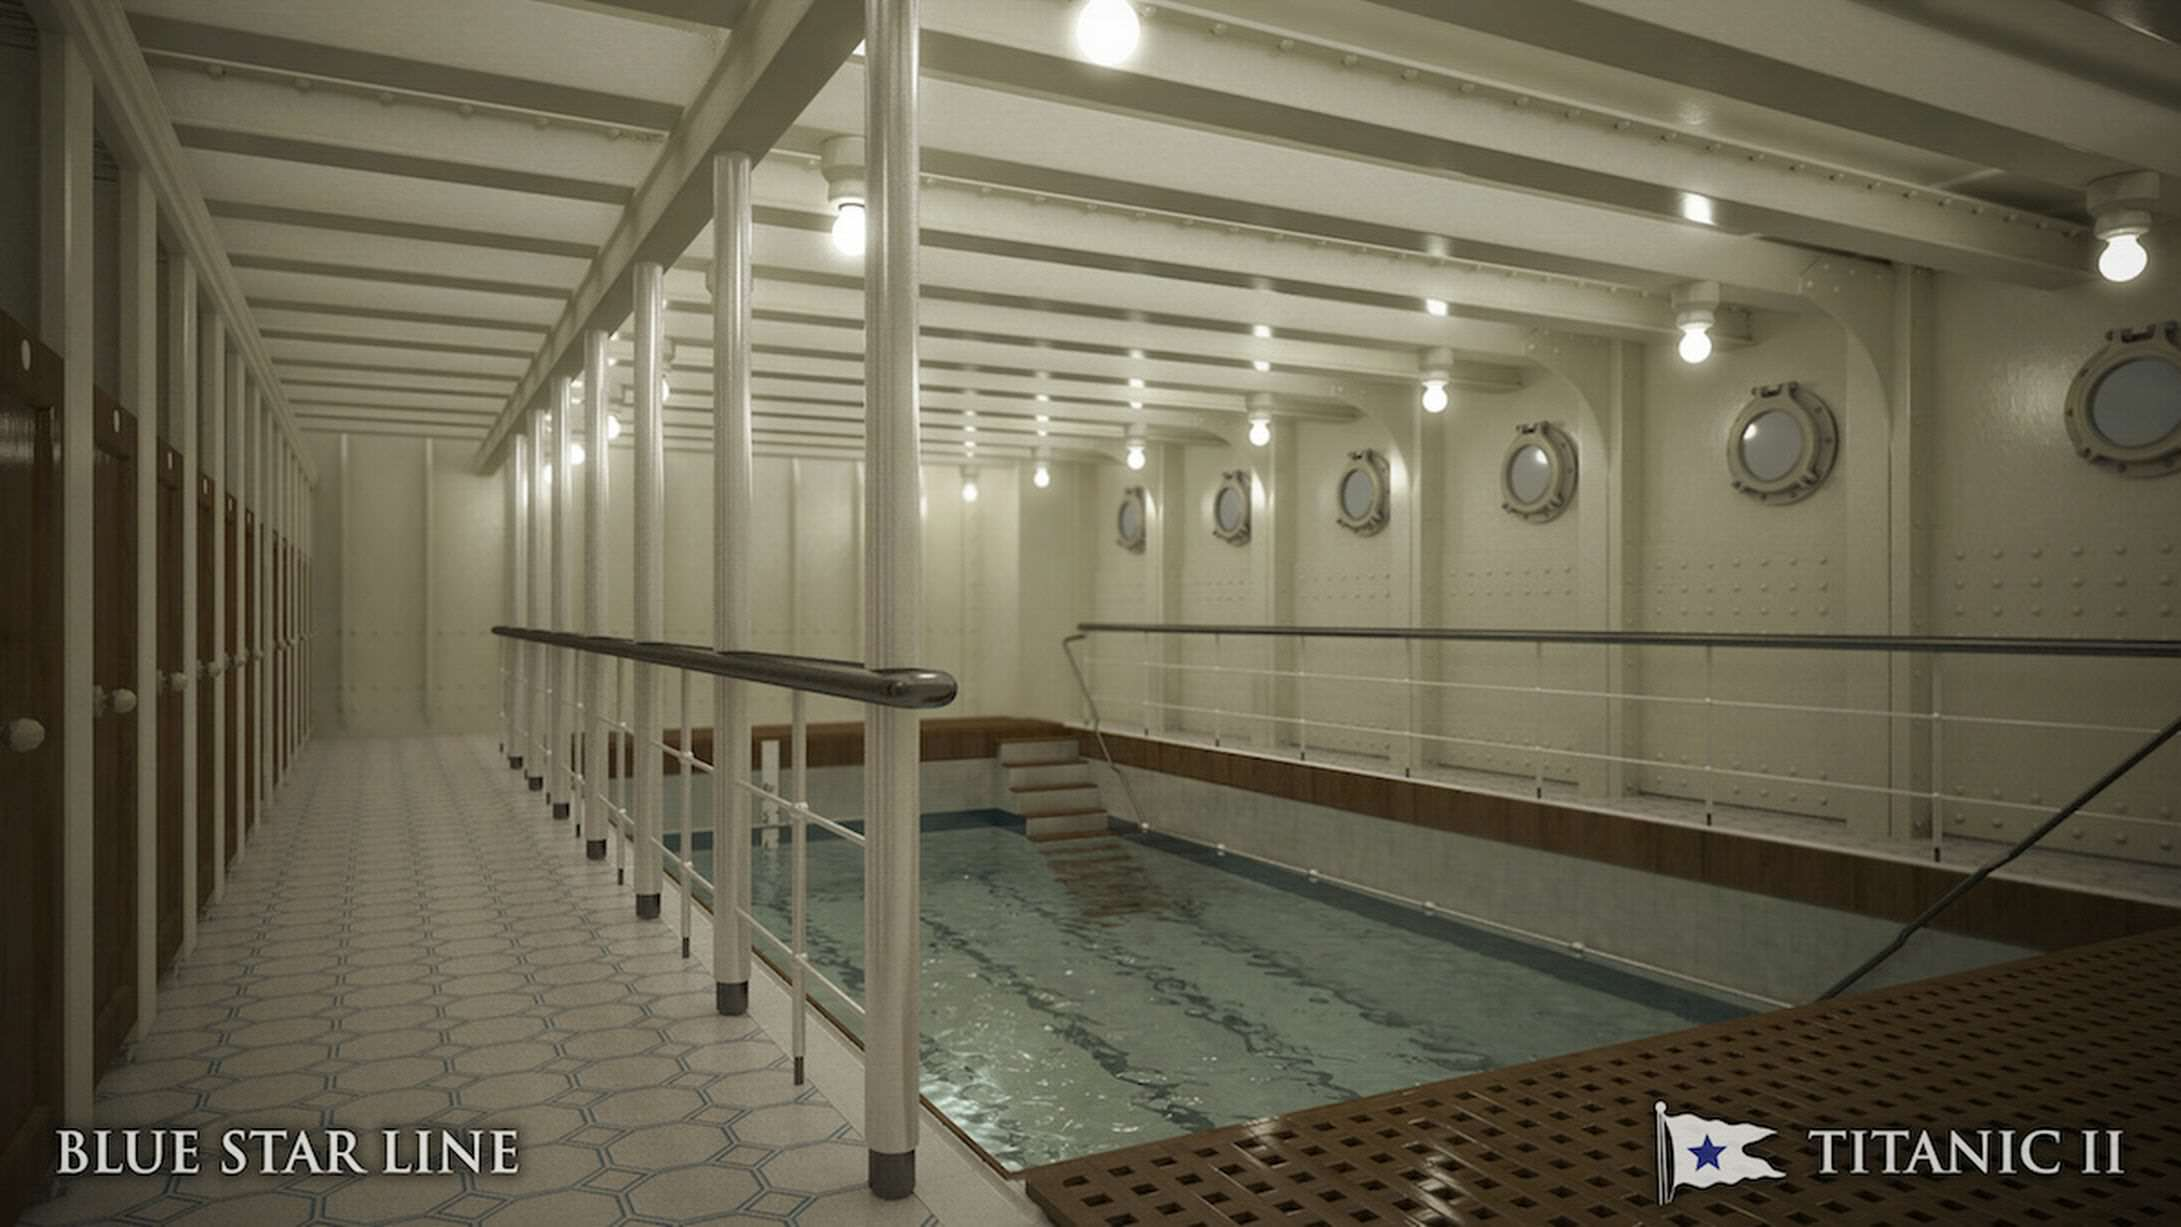 Incredible New Photos Give First Look Inside Titanic 2